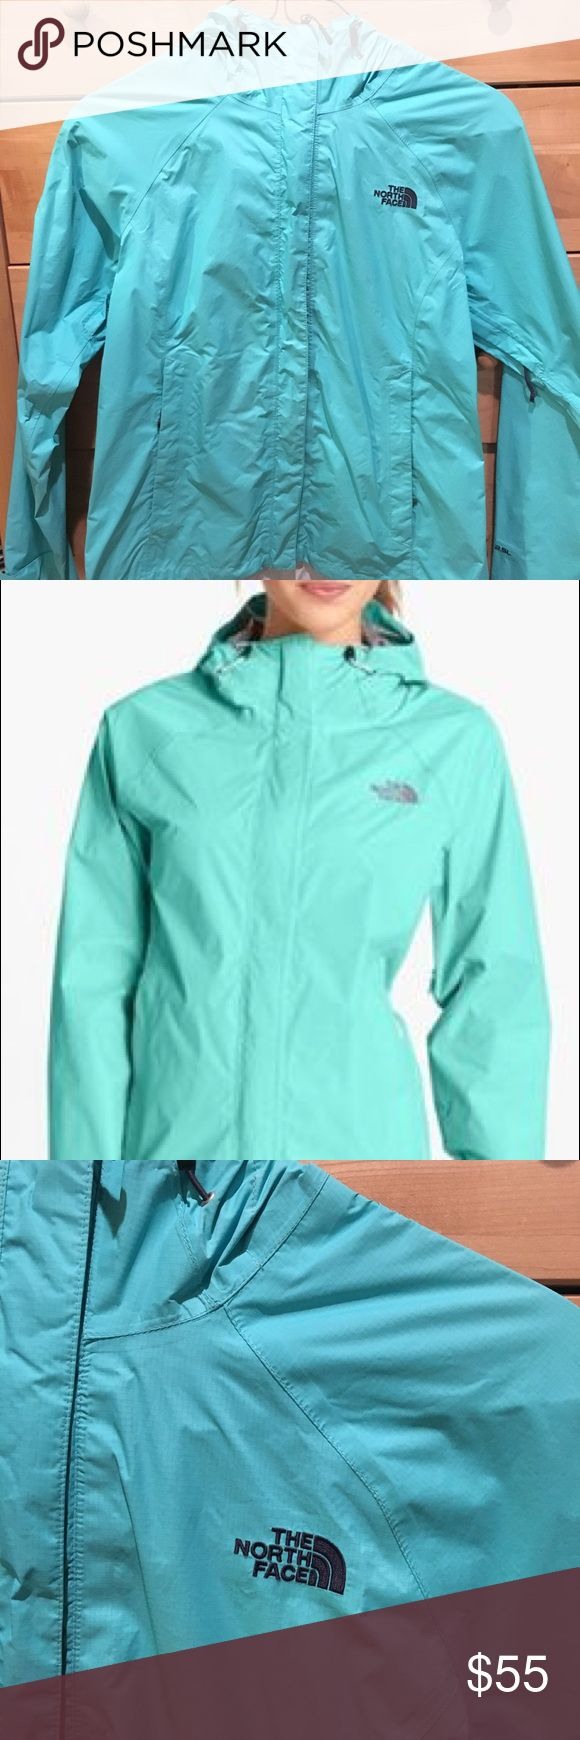 North Face Rain Jacket Turquoise North Face zip-up rain jacket with hood! North Face Jackets & Coats